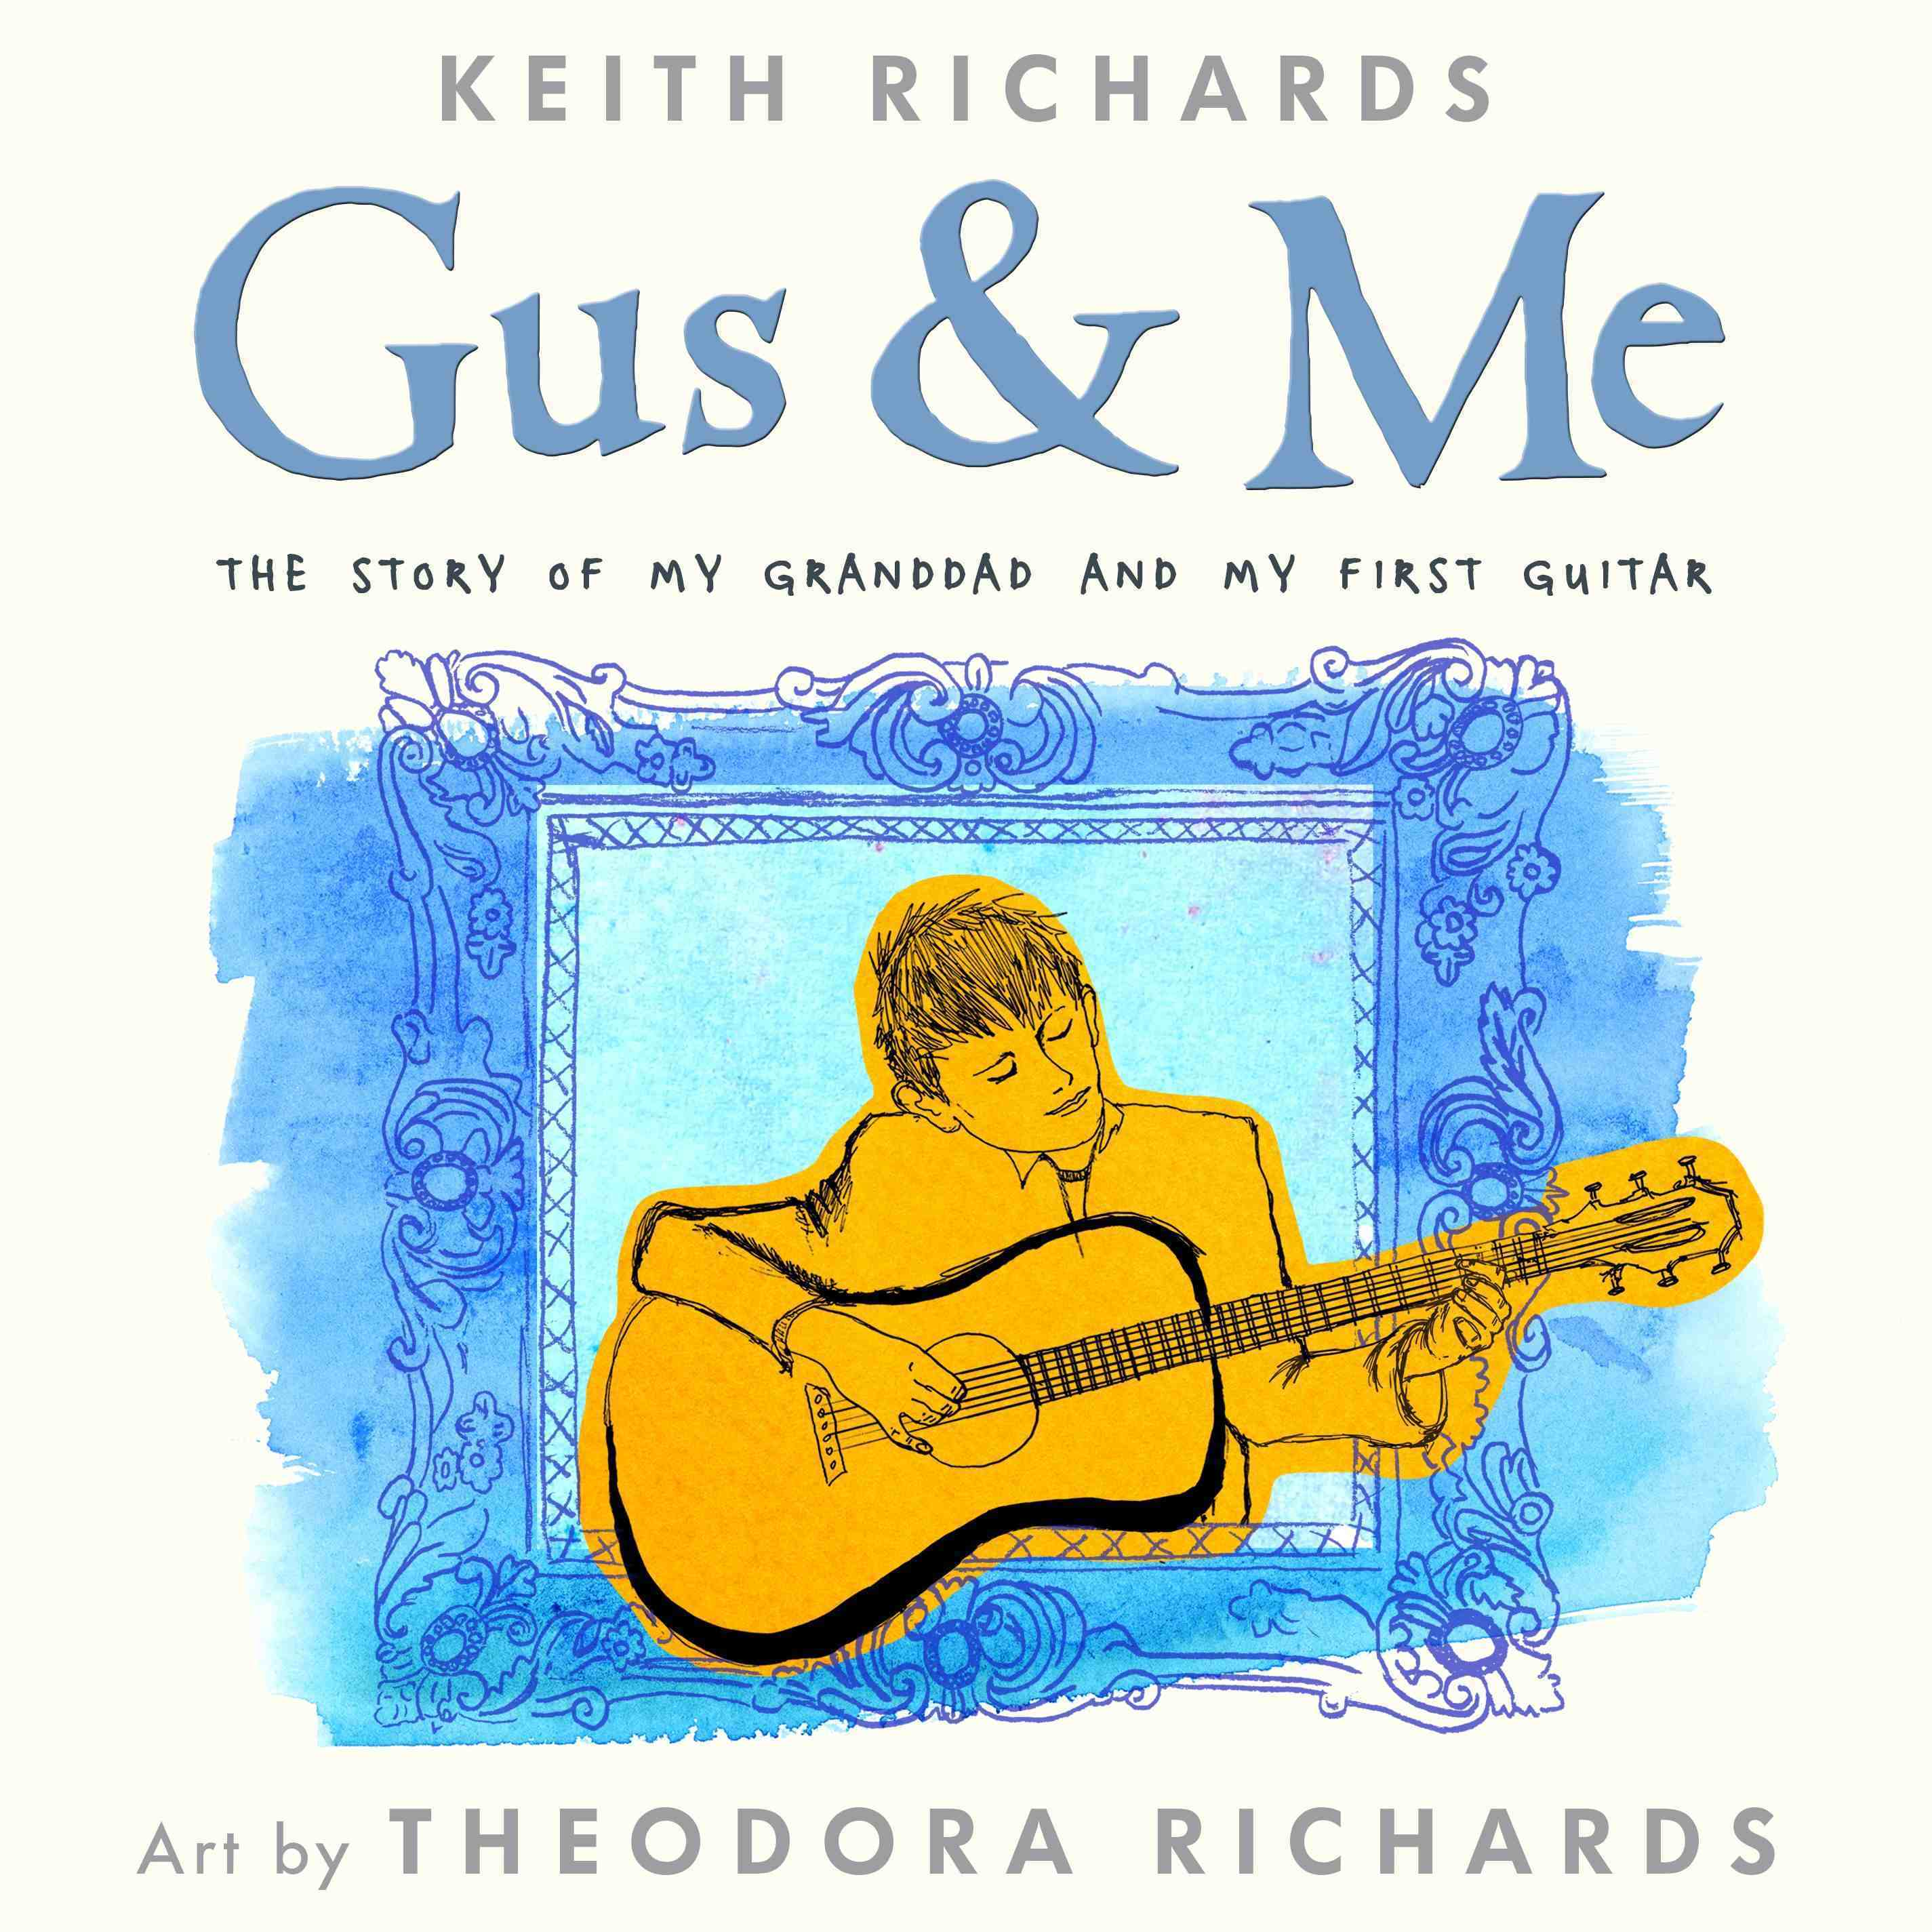 Cover art for the forthcoming picture book, Gus & Me: The Story of My Granddad & My First Guitar by Keith Richards, with illustrations by Theodora Richards